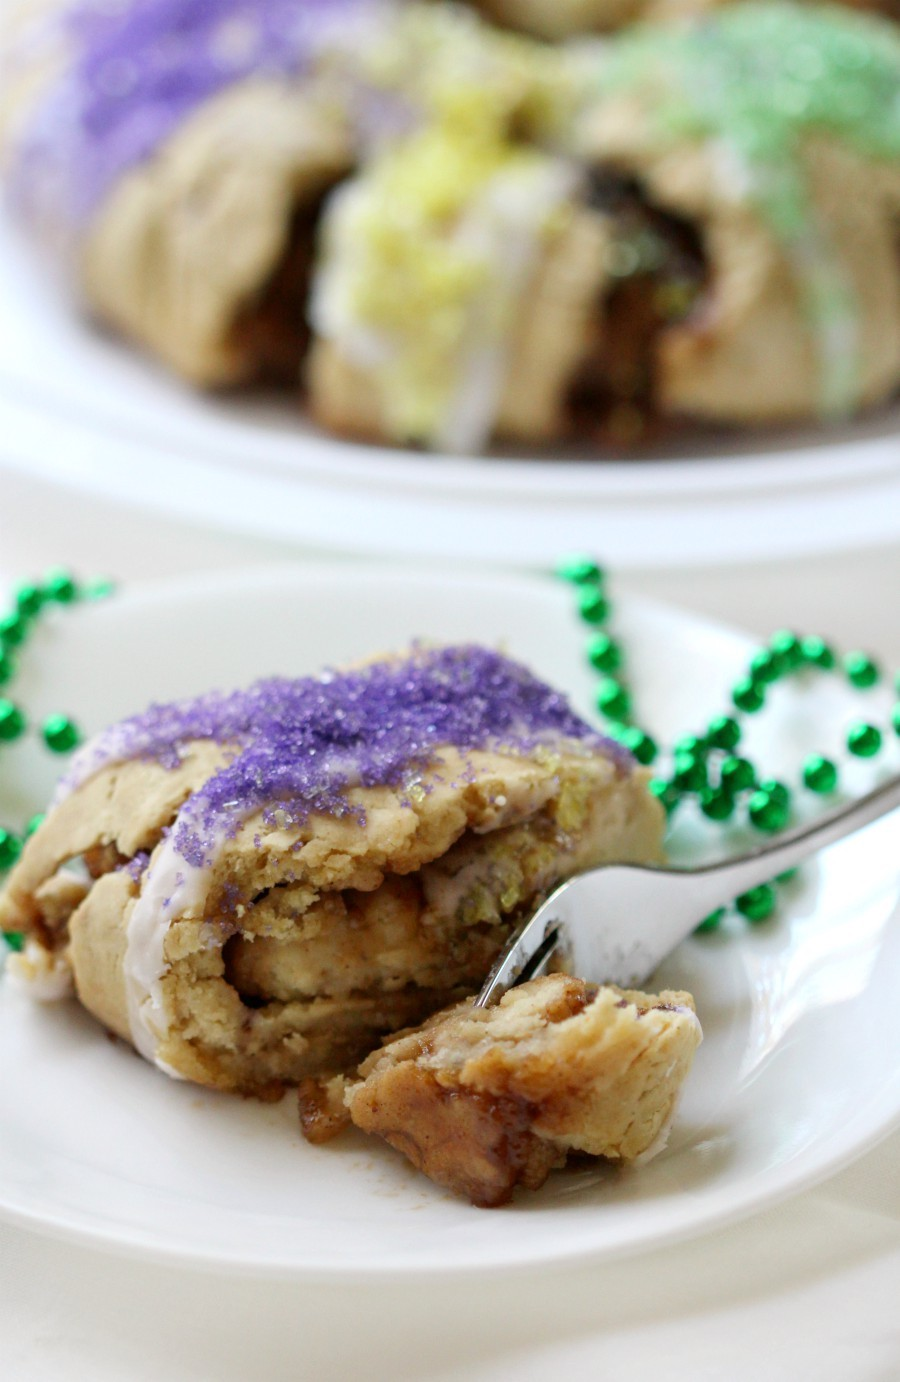 slice-of-king-cake-with-fork